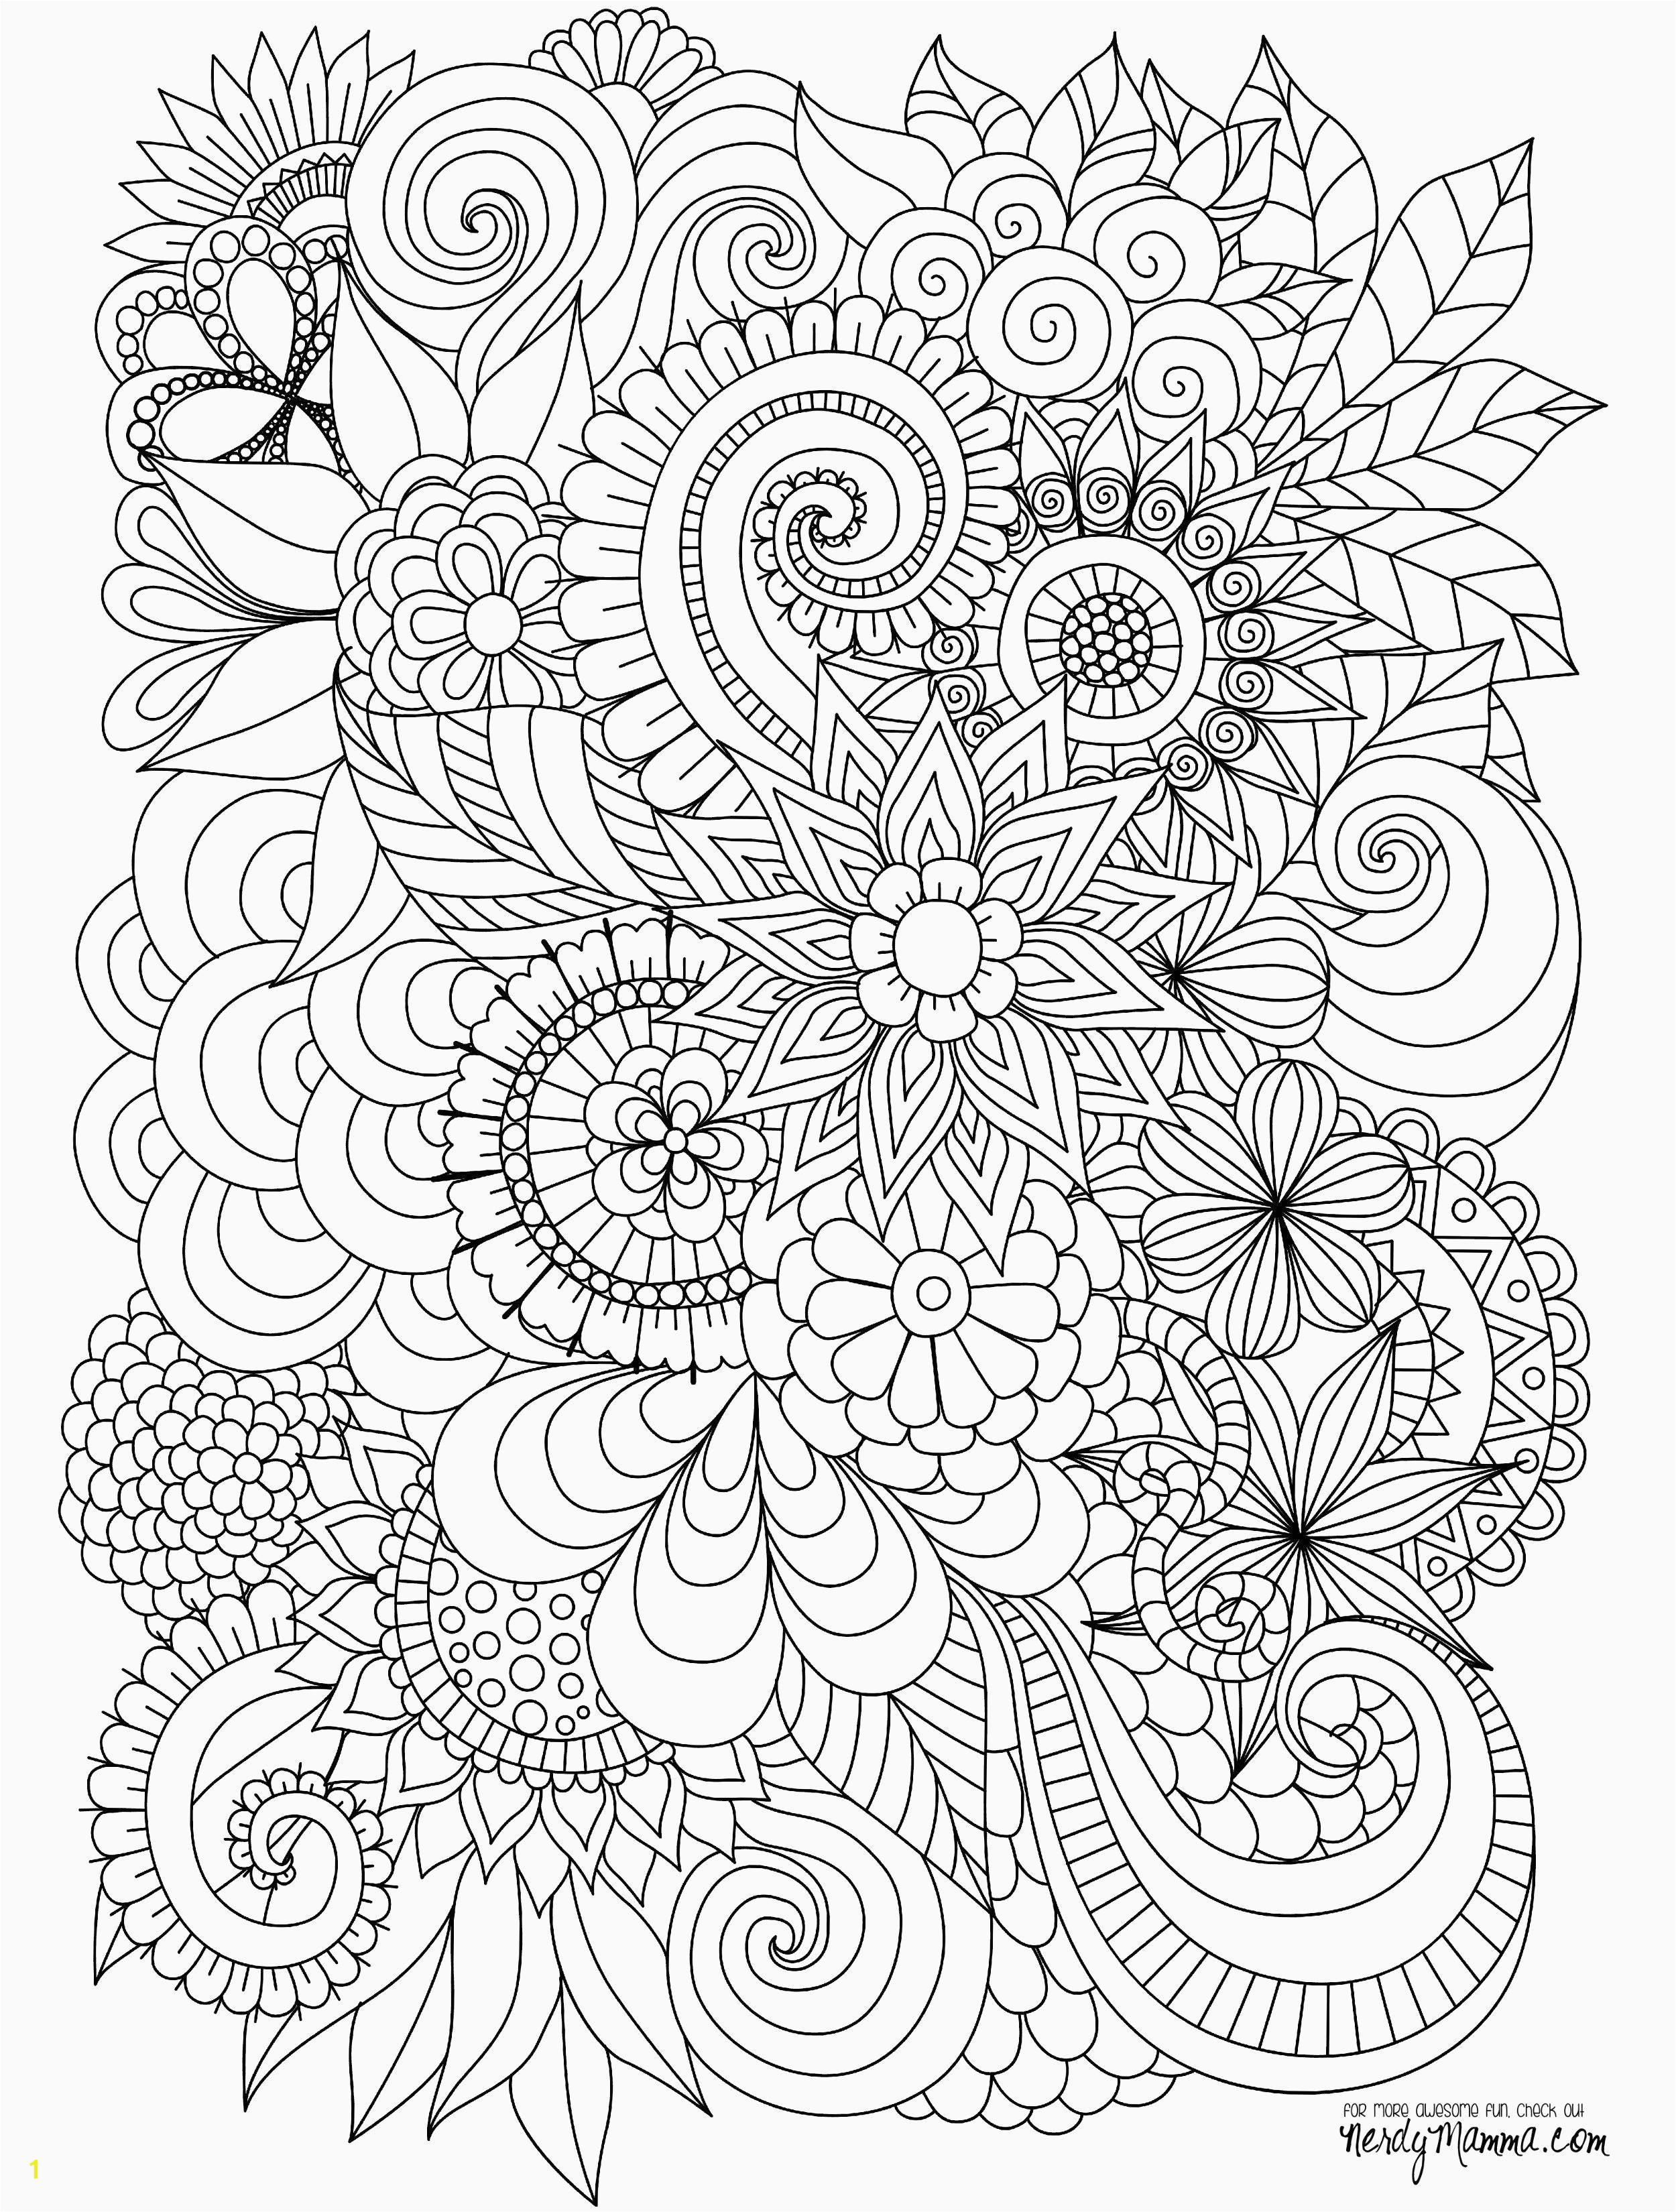 Fall Coloring Pages for Adults Printable Beautiful Best Coloring Page Adult Od Kids Simple Stock Vector